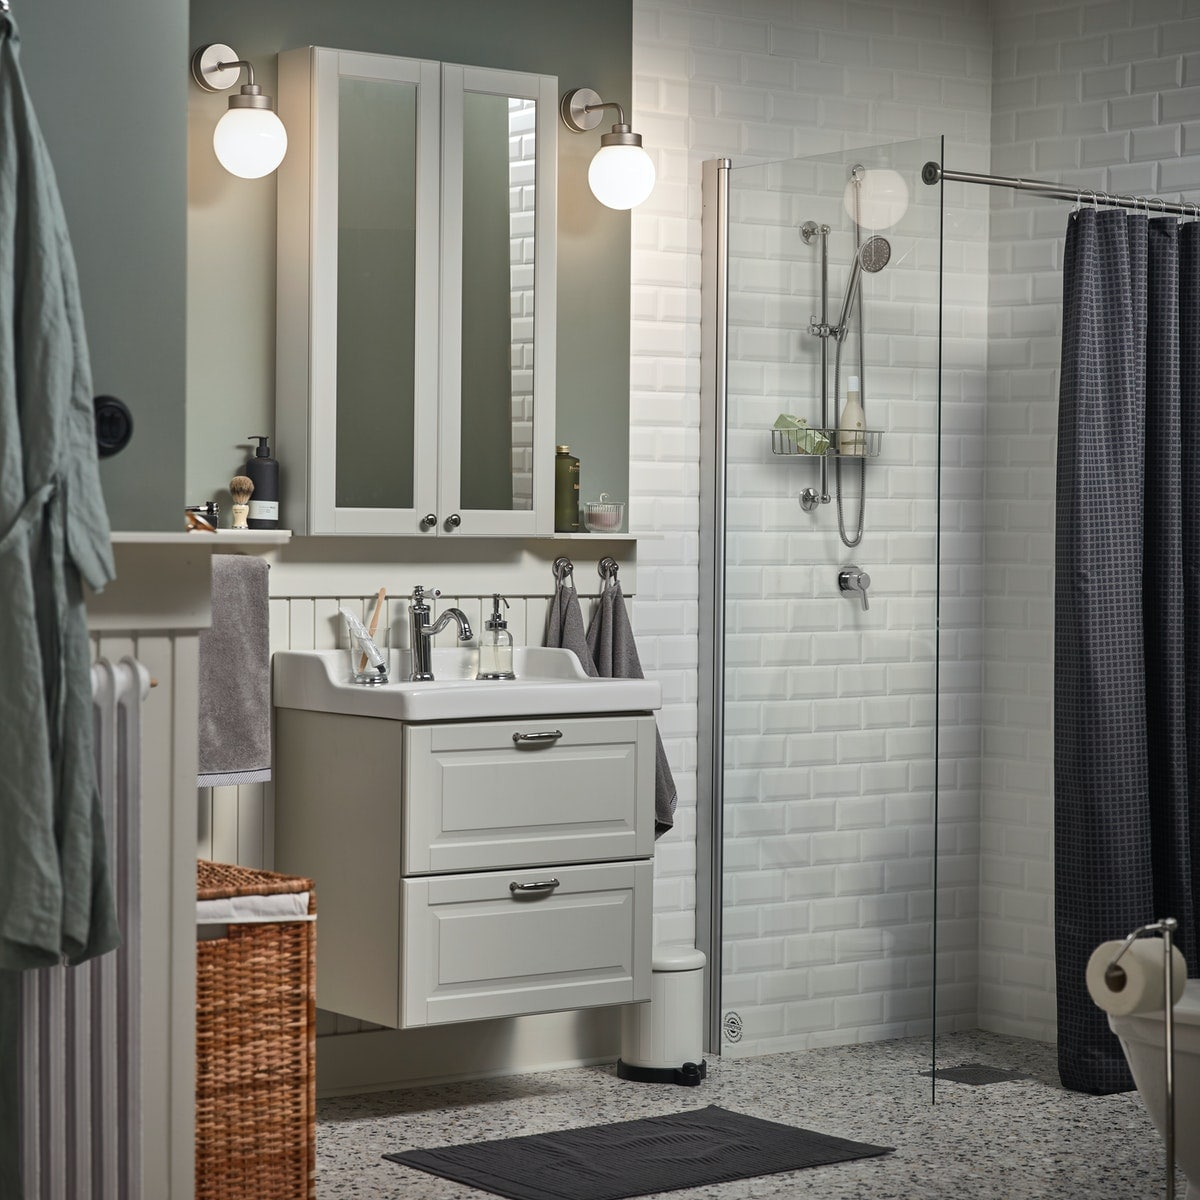 A white-tiled bathroom with light green walls, two FRIHULT wall lamps on either side of a GODMORGON mirror cabinet.